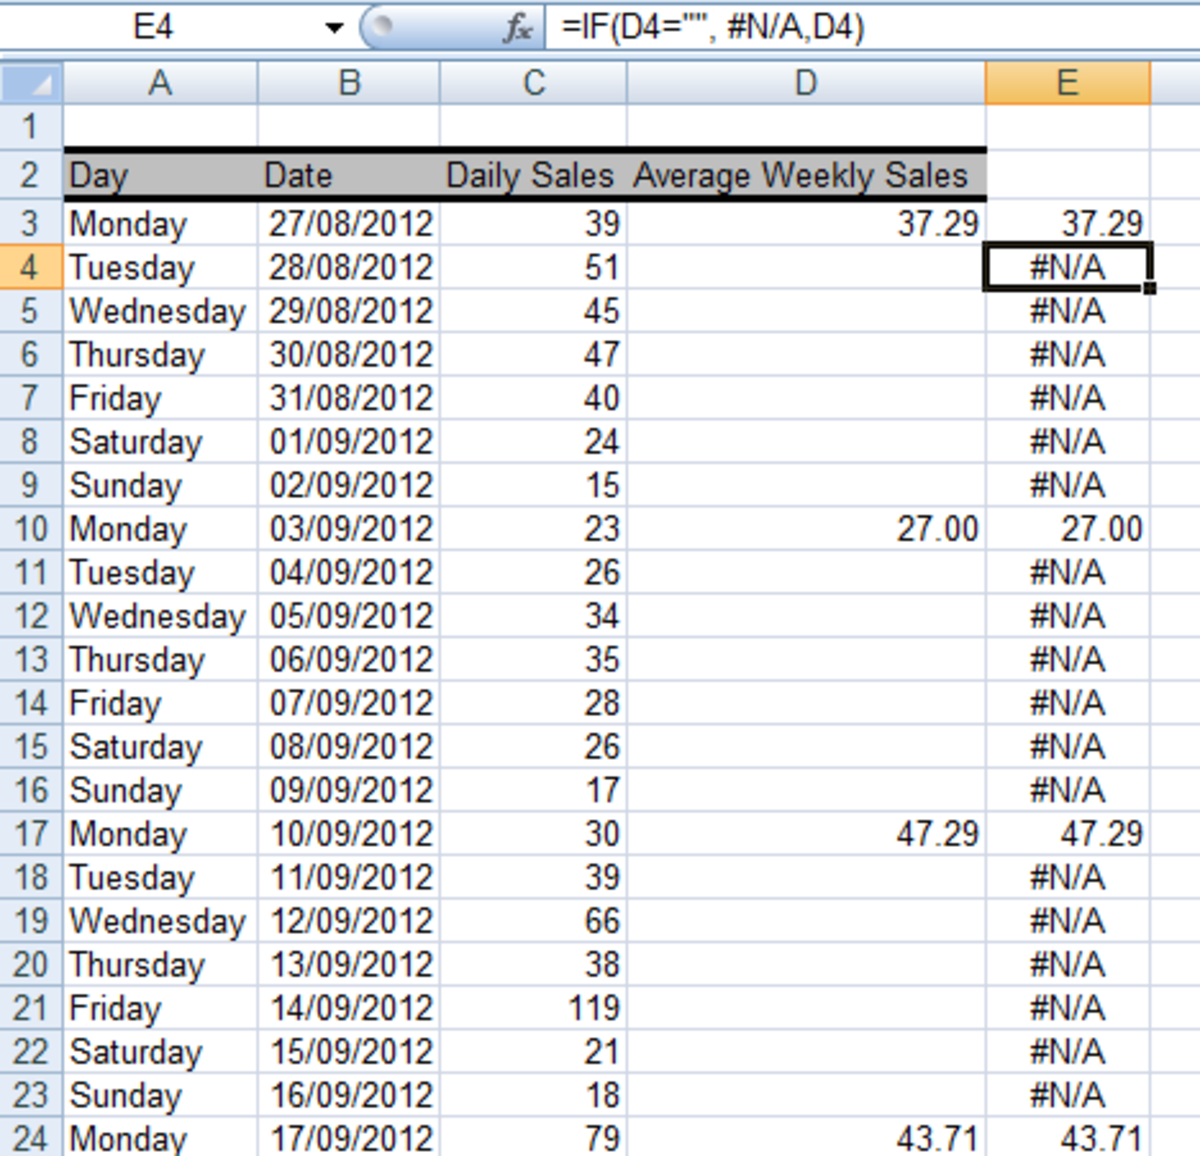 Ediblewildsus  Personable How To Get Excel  And  To Ignore Empty Cells In A Chart Or  With Great Using The If Function In A Formula To Convert Empty Cells To Na With Awesome Excel Nursing Also Combining Excel Files In Addition How To Do Factorial In Excel And Match Type Excel As Well As Copy A Formula In Excel Additionally How To Make A Line Of Best Fit On Excel From Turbofuturecom With Ediblewildsus  Great How To Get Excel  And  To Ignore Empty Cells In A Chart Or  With Awesome Using The If Function In A Formula To Convert Empty Cells To Na And Personable Excel Nursing Also Combining Excel Files In Addition How To Do Factorial In Excel From Turbofuturecom